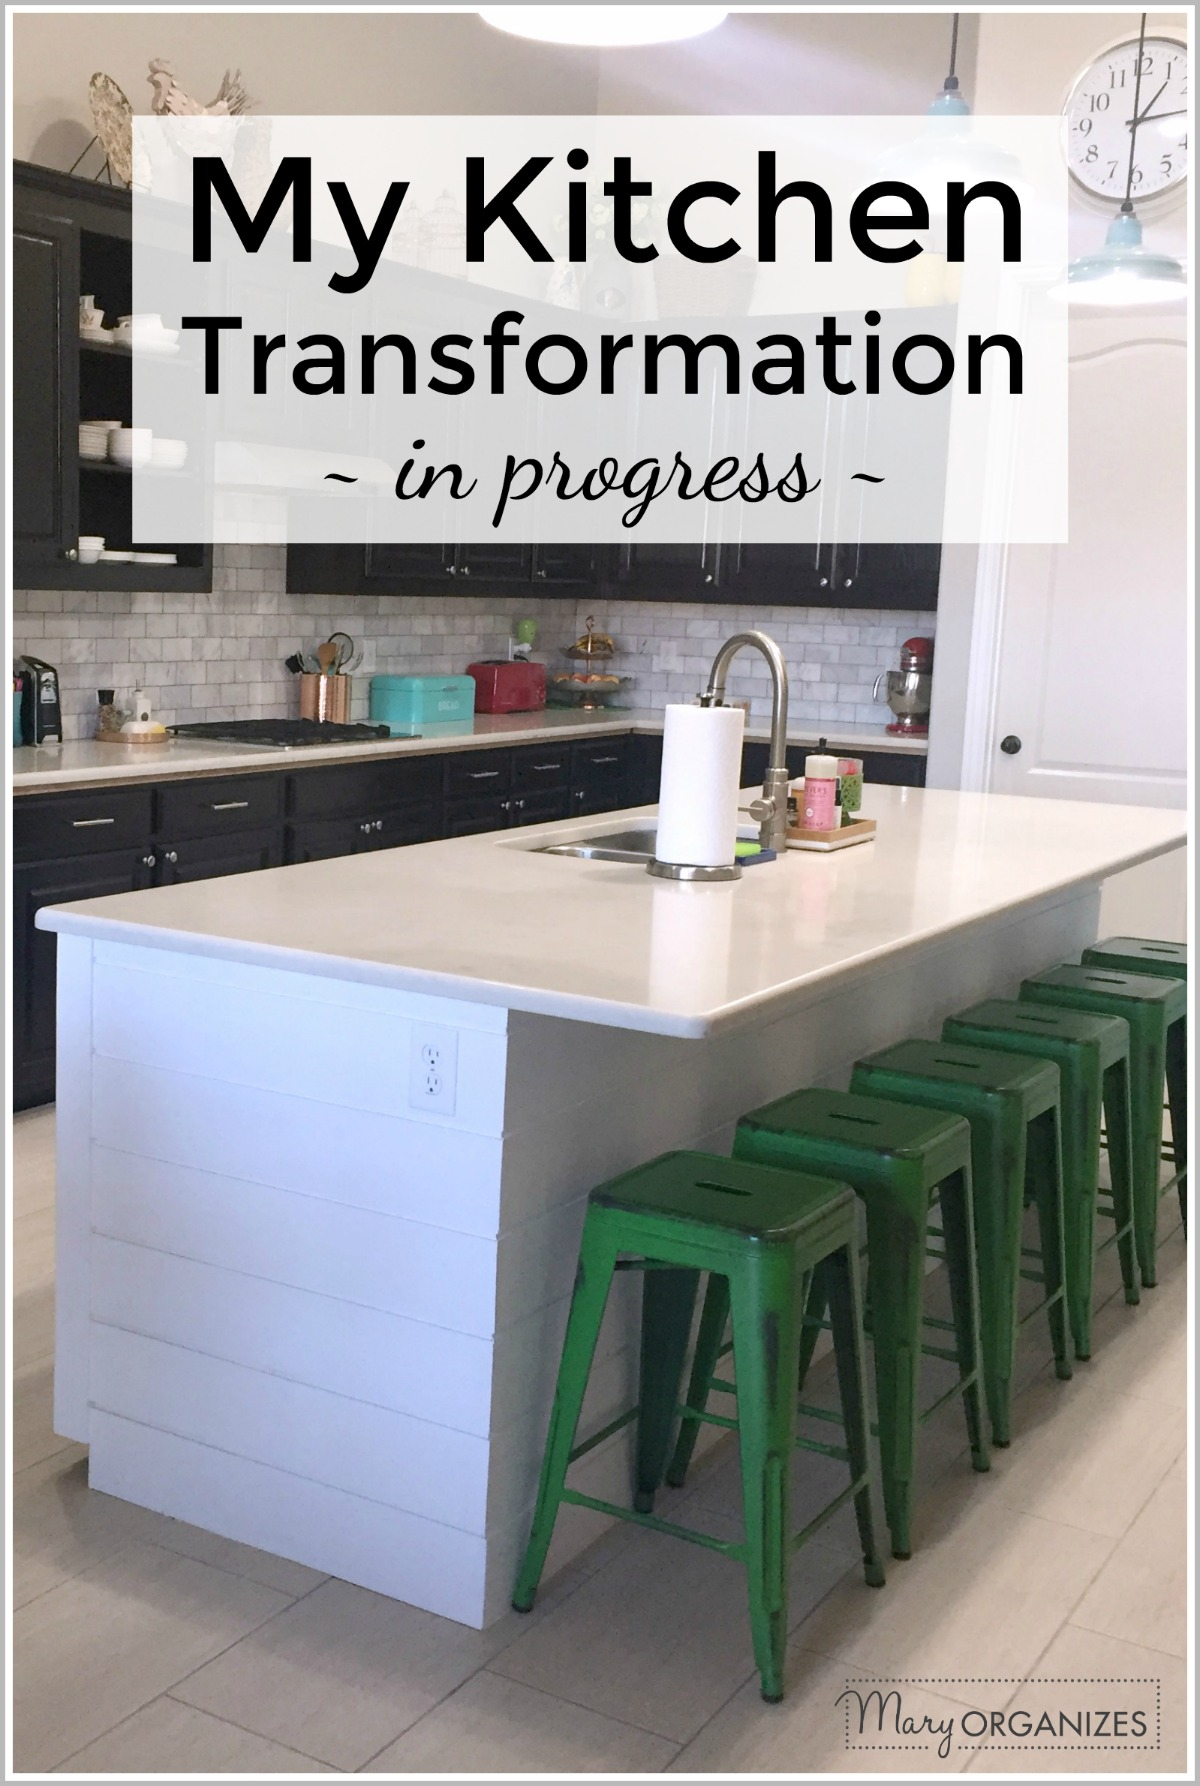 Kitchen Update and Transformation in progress -v